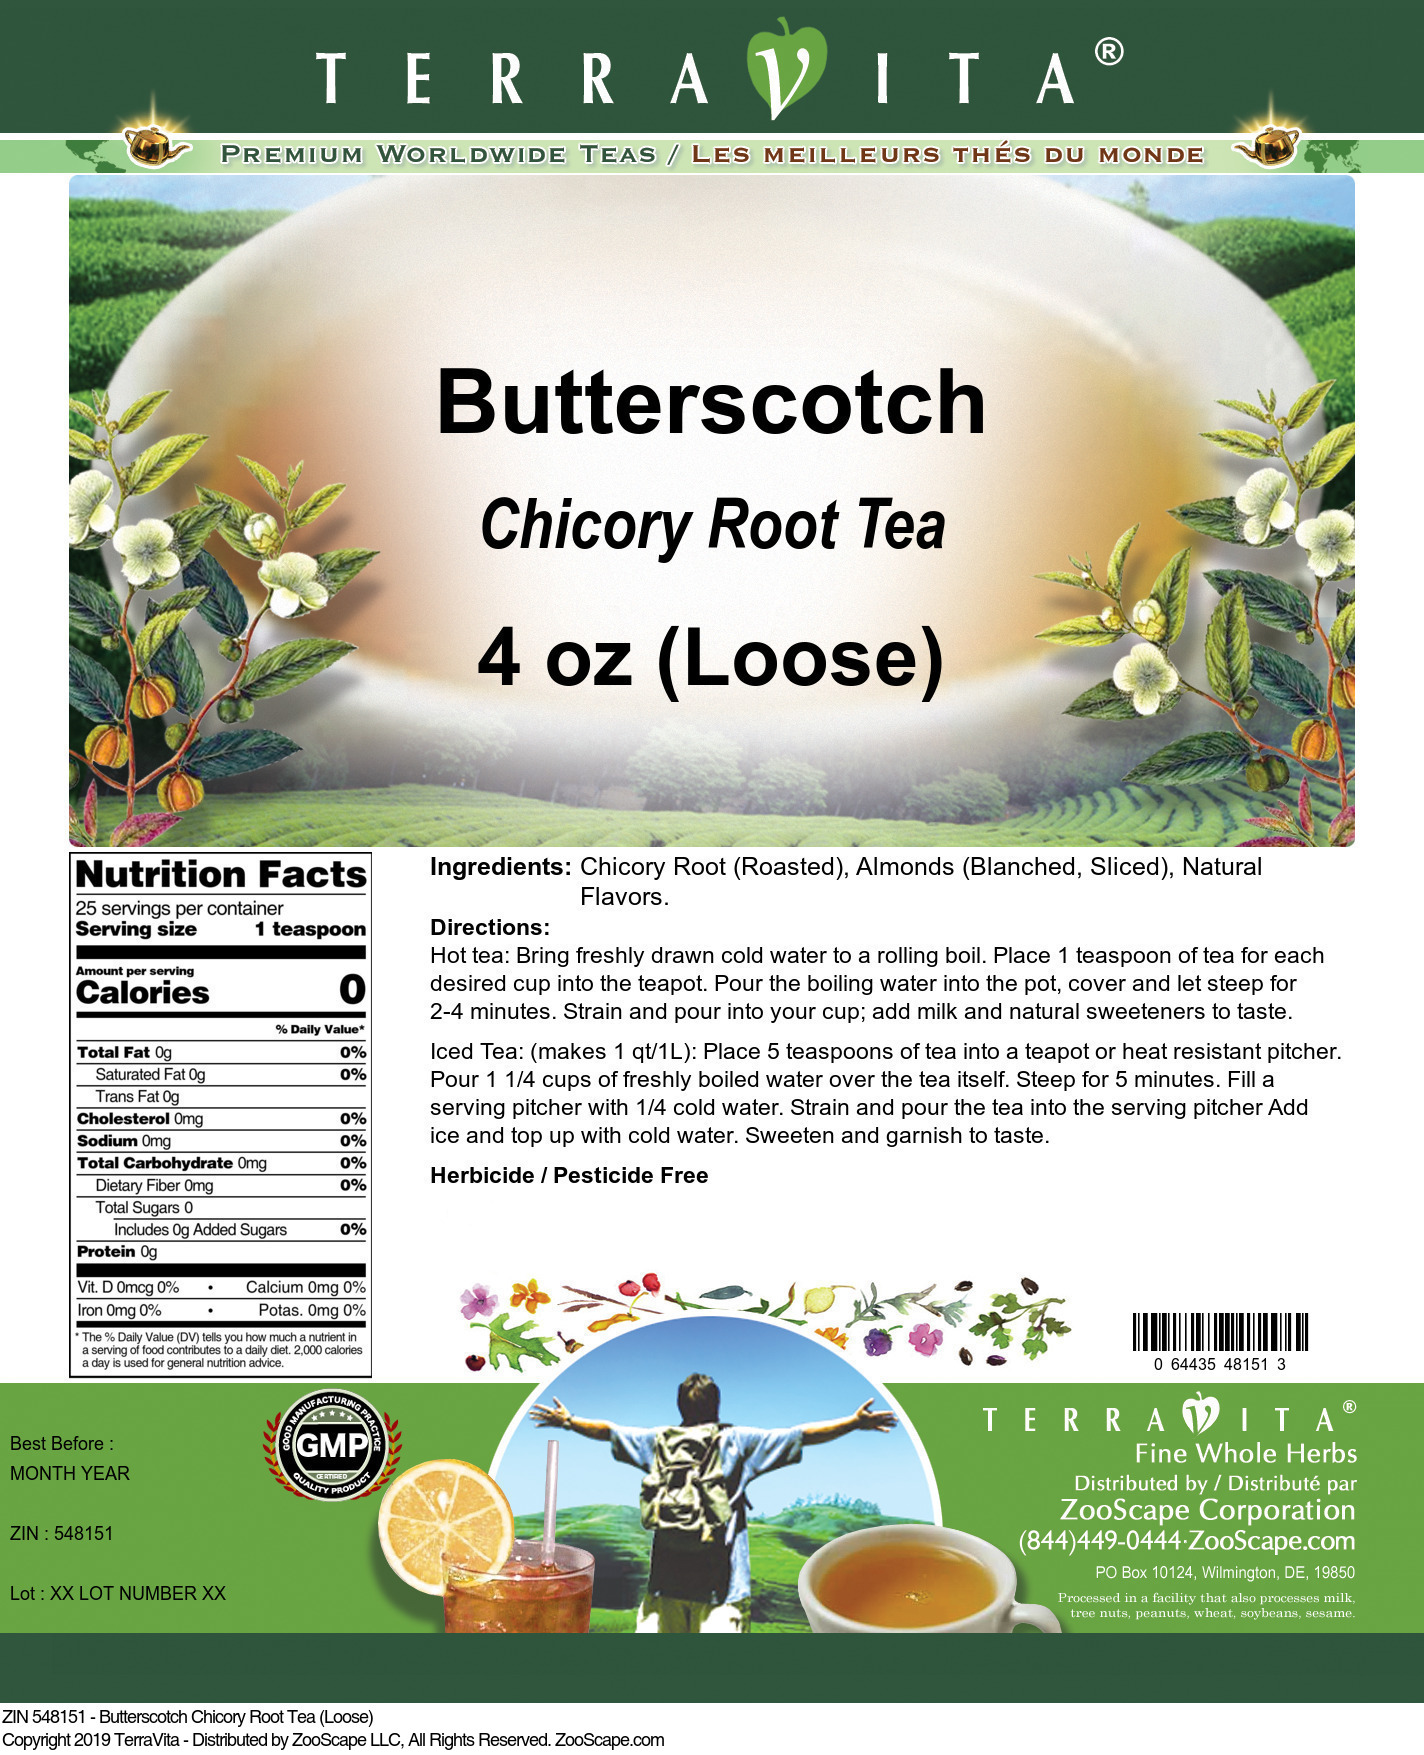 Butterscotch Chicory Root Tea (Loose)